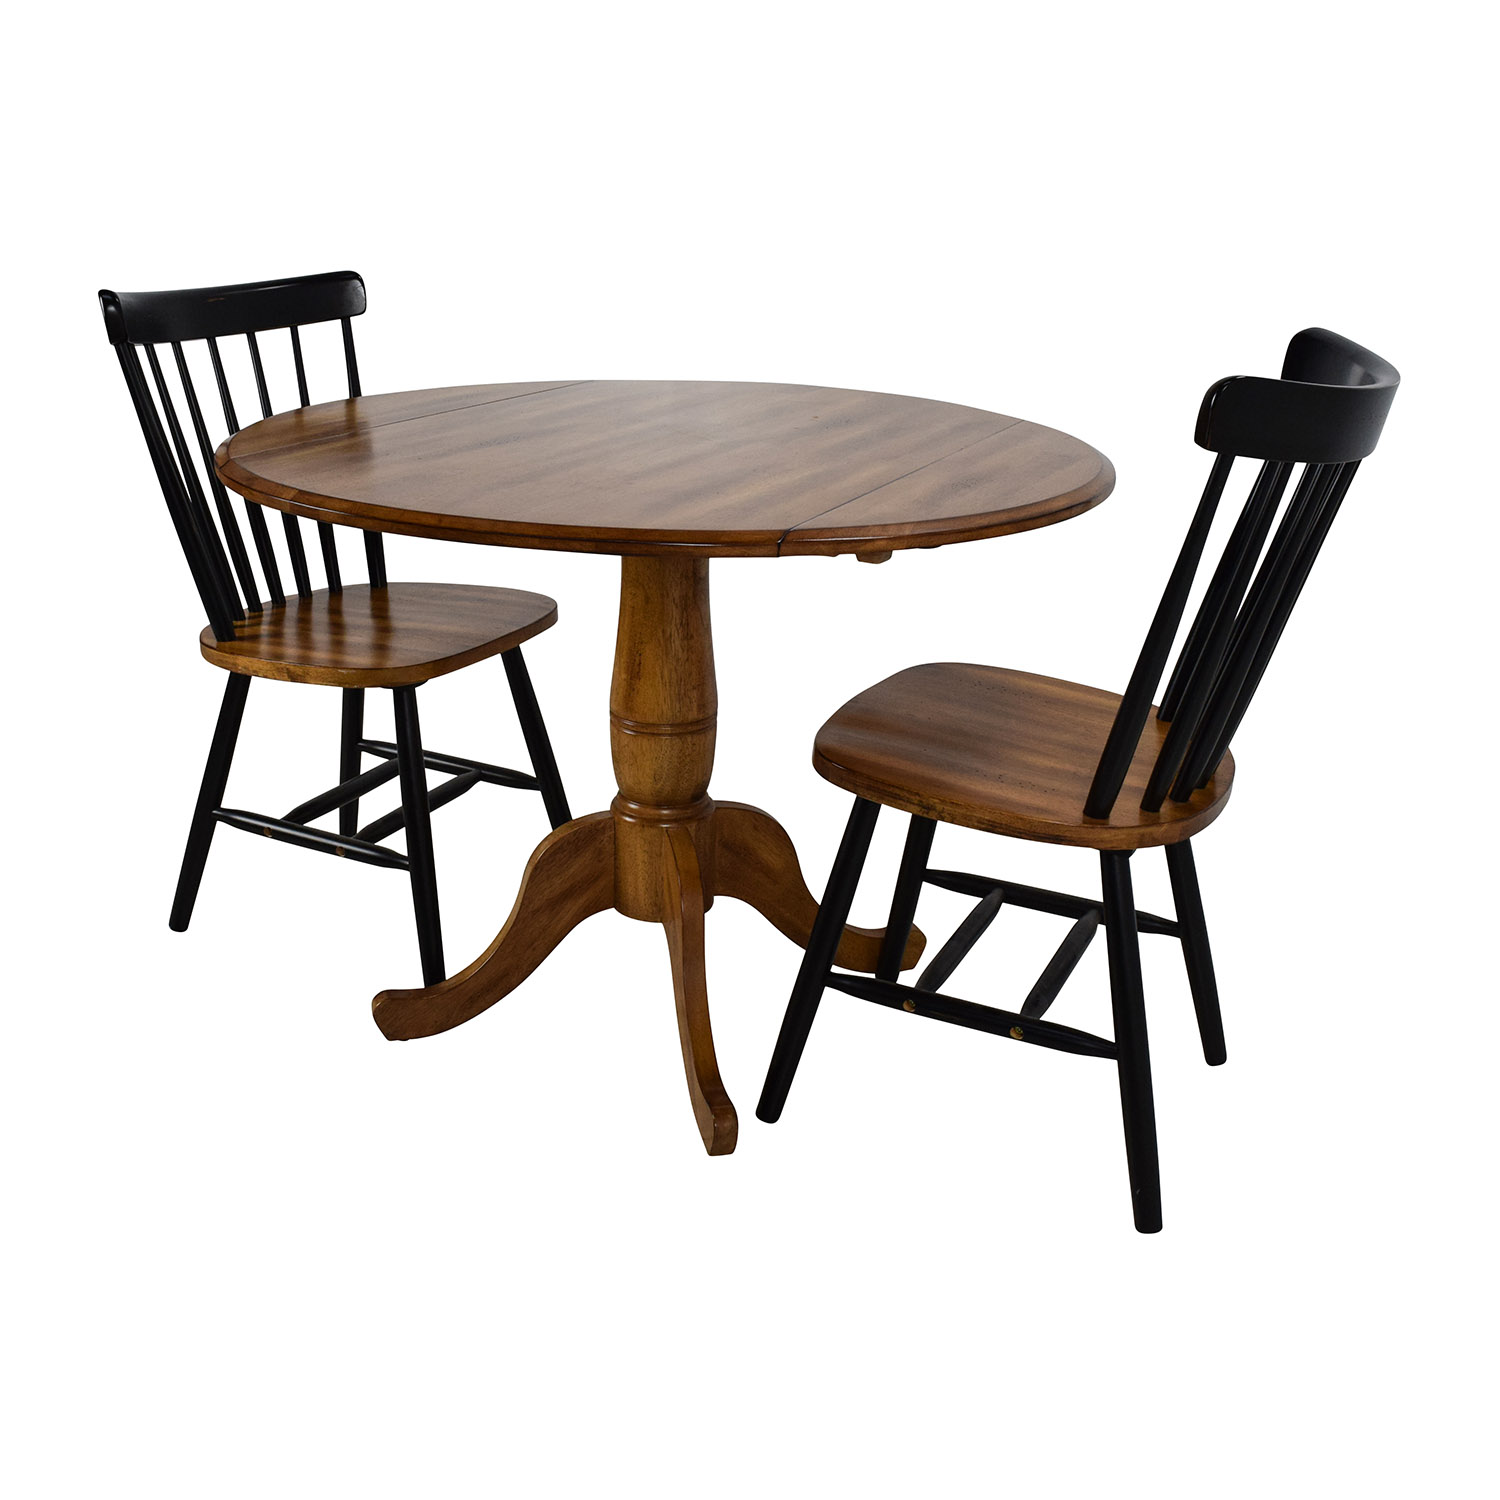 72 Off Raymour Flanigan Raymour Flanigan Foldable Table Set Tables